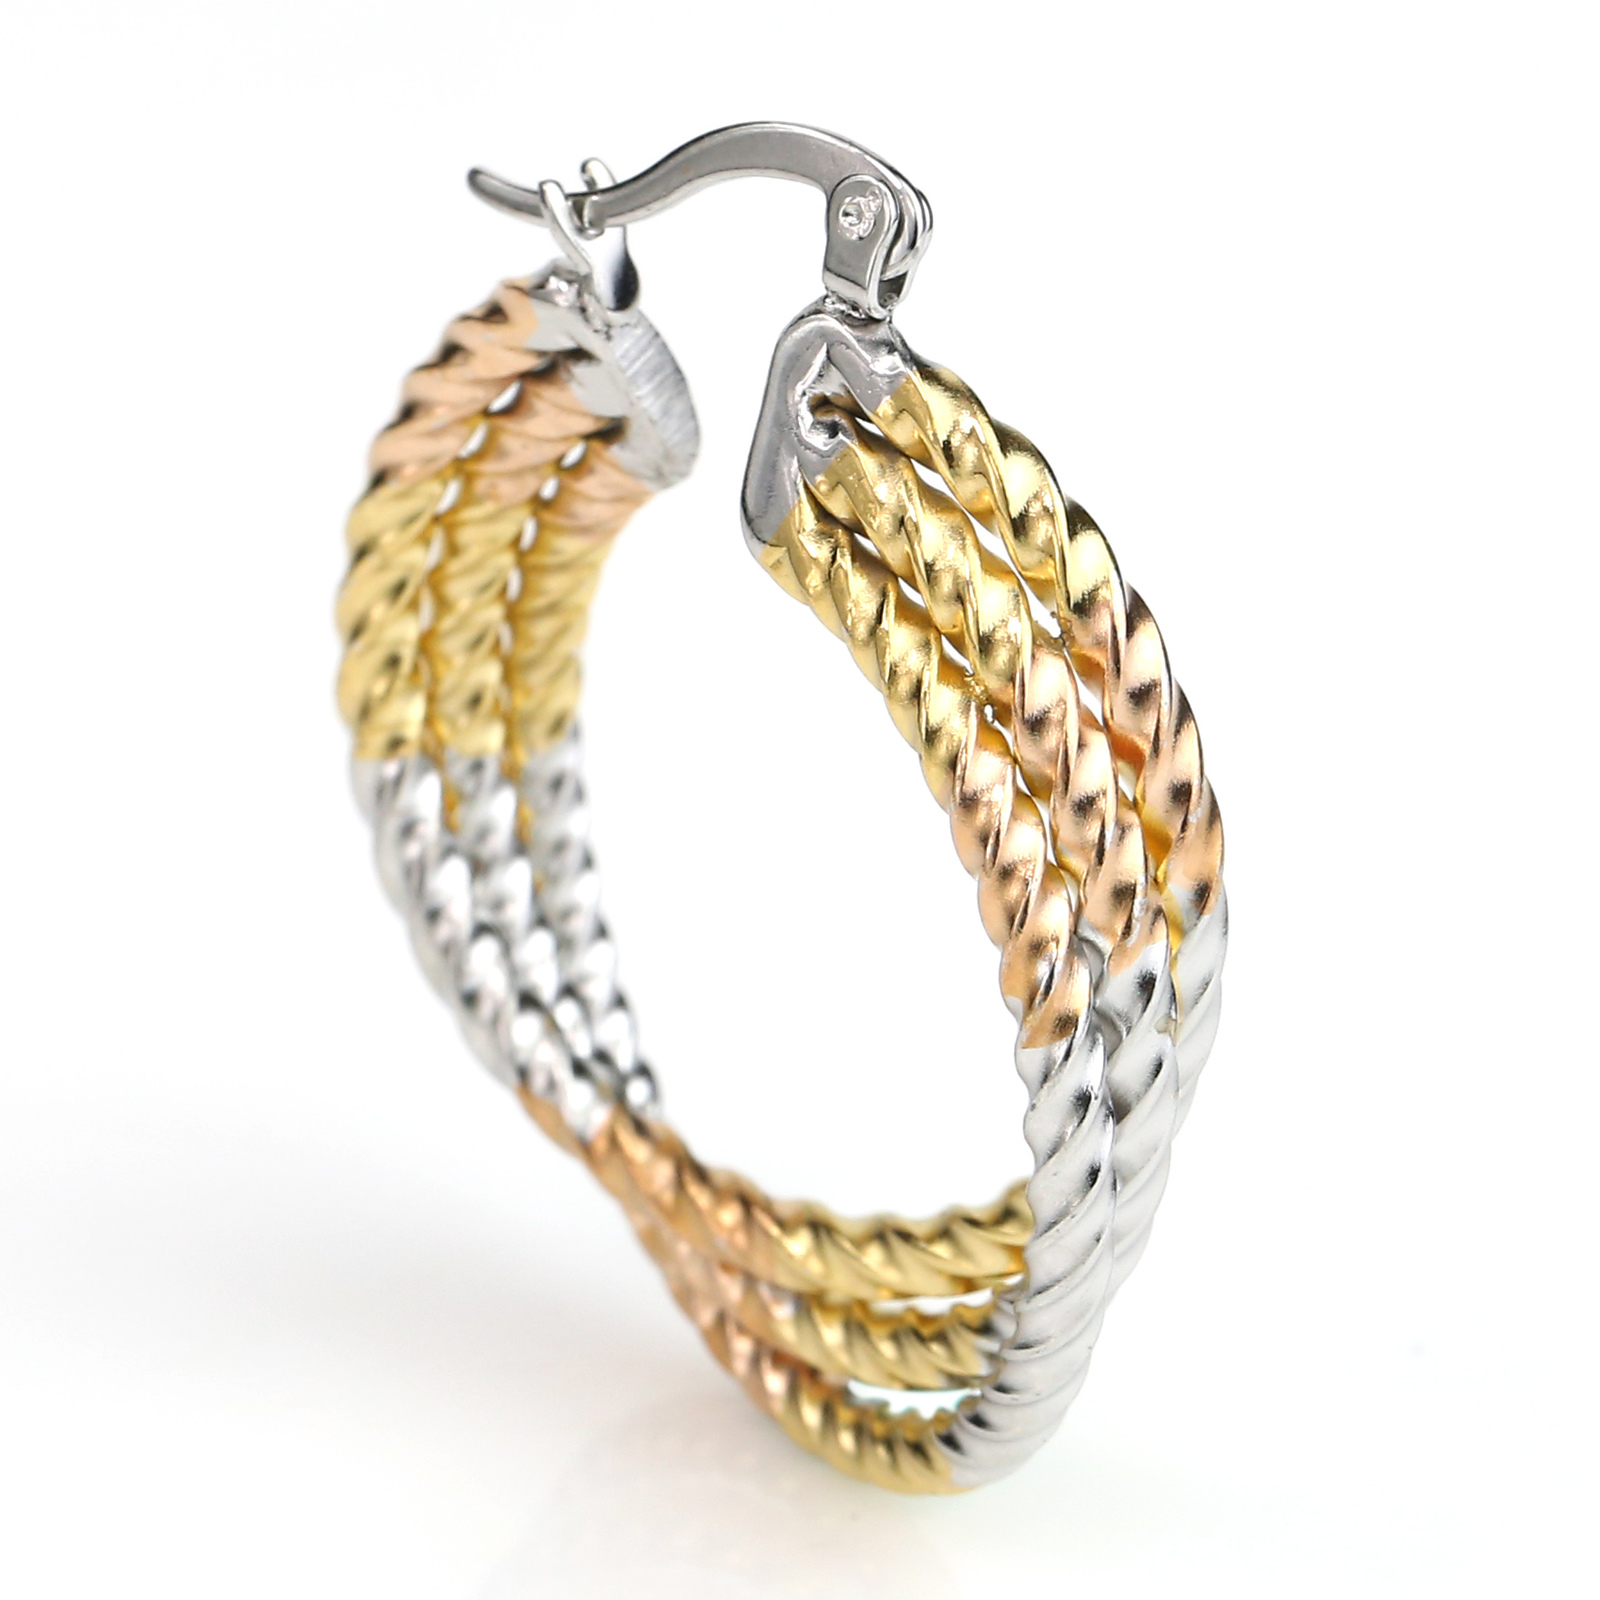 Contemporary Twisted Tri-Color Silver, Gold Hoop Earrings- United Elegance